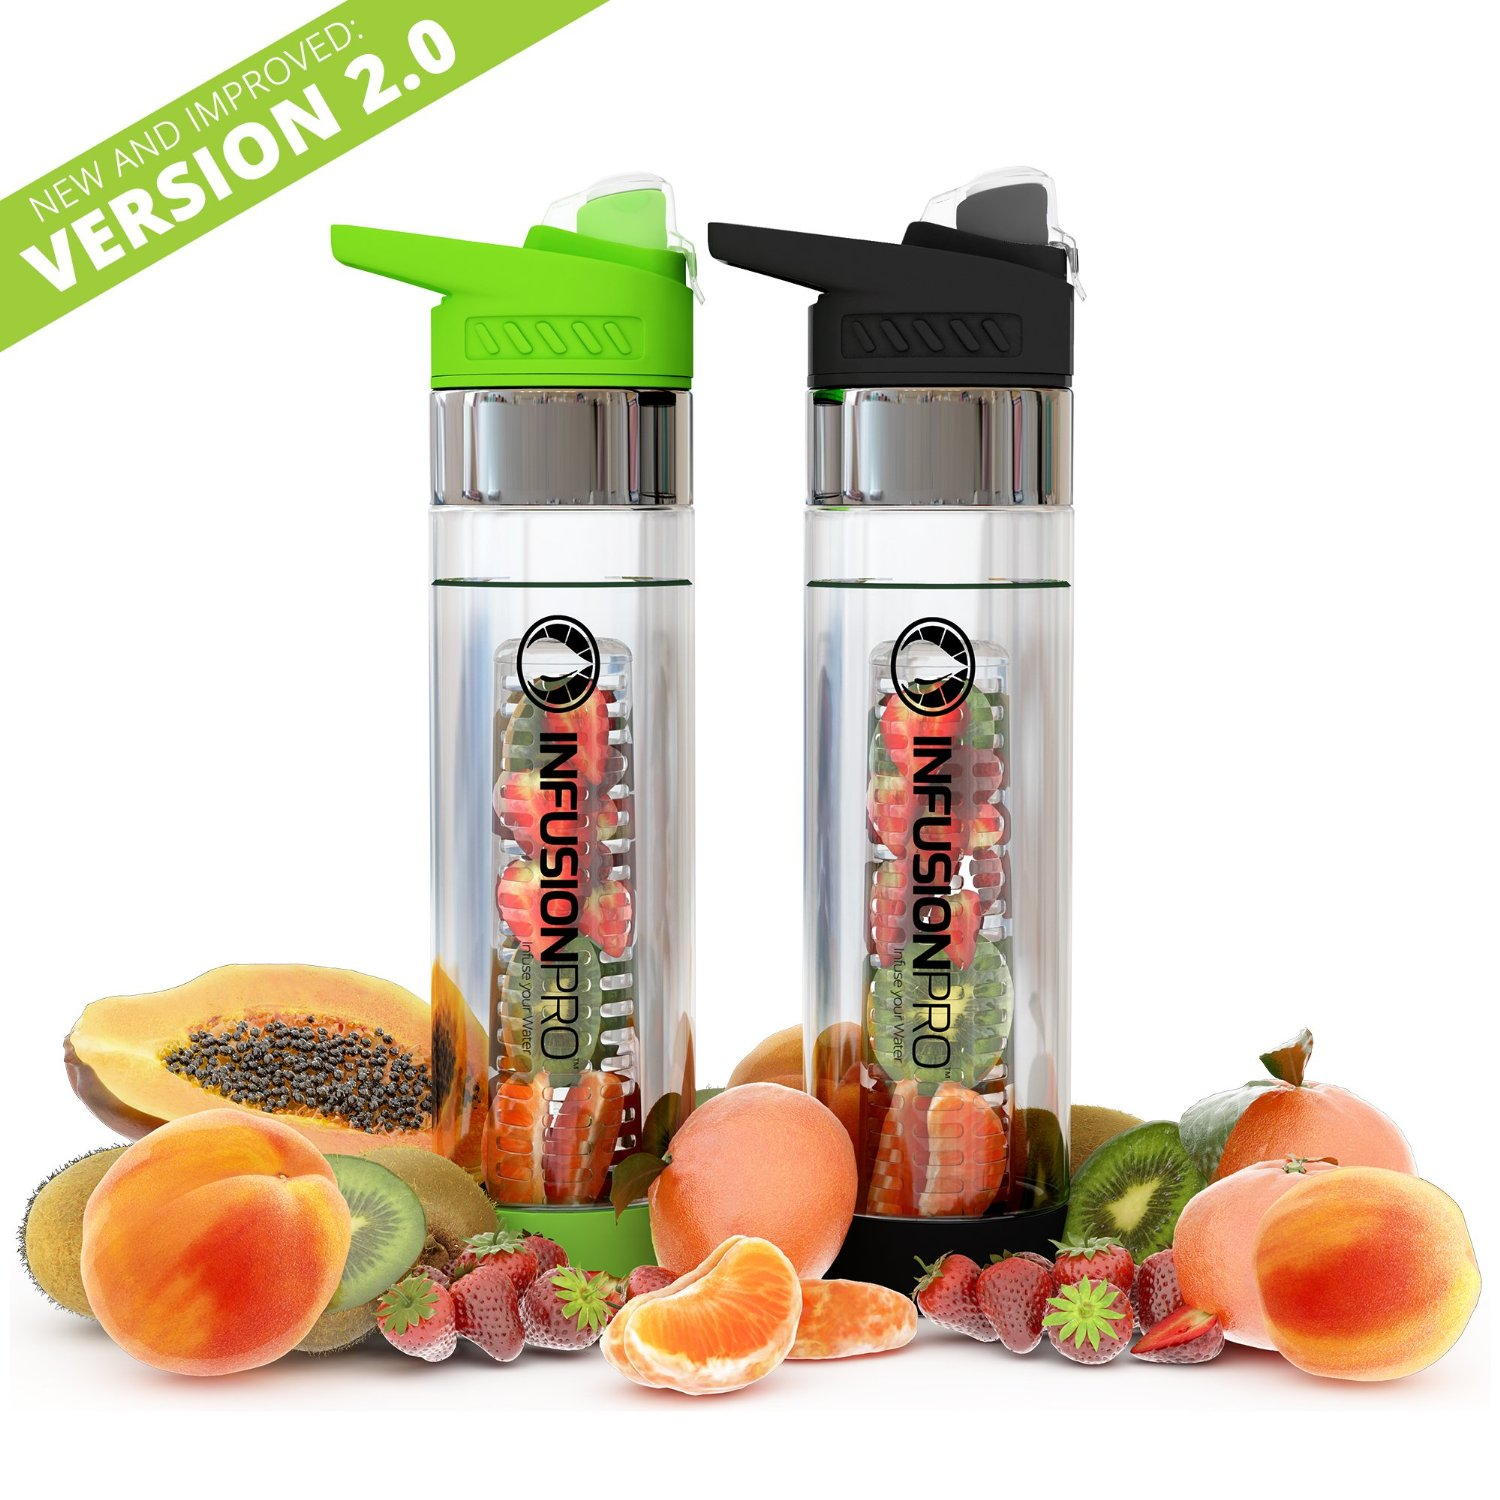 Darilyn Sues Product Reviews Infusion Pro V20 Premium 2 Pack New Tritan Infusd Water Bottle Fruit Infused Bottom Infuser With Flip Top Lid Large 24 Oz Bpa Free Plastic Green Black